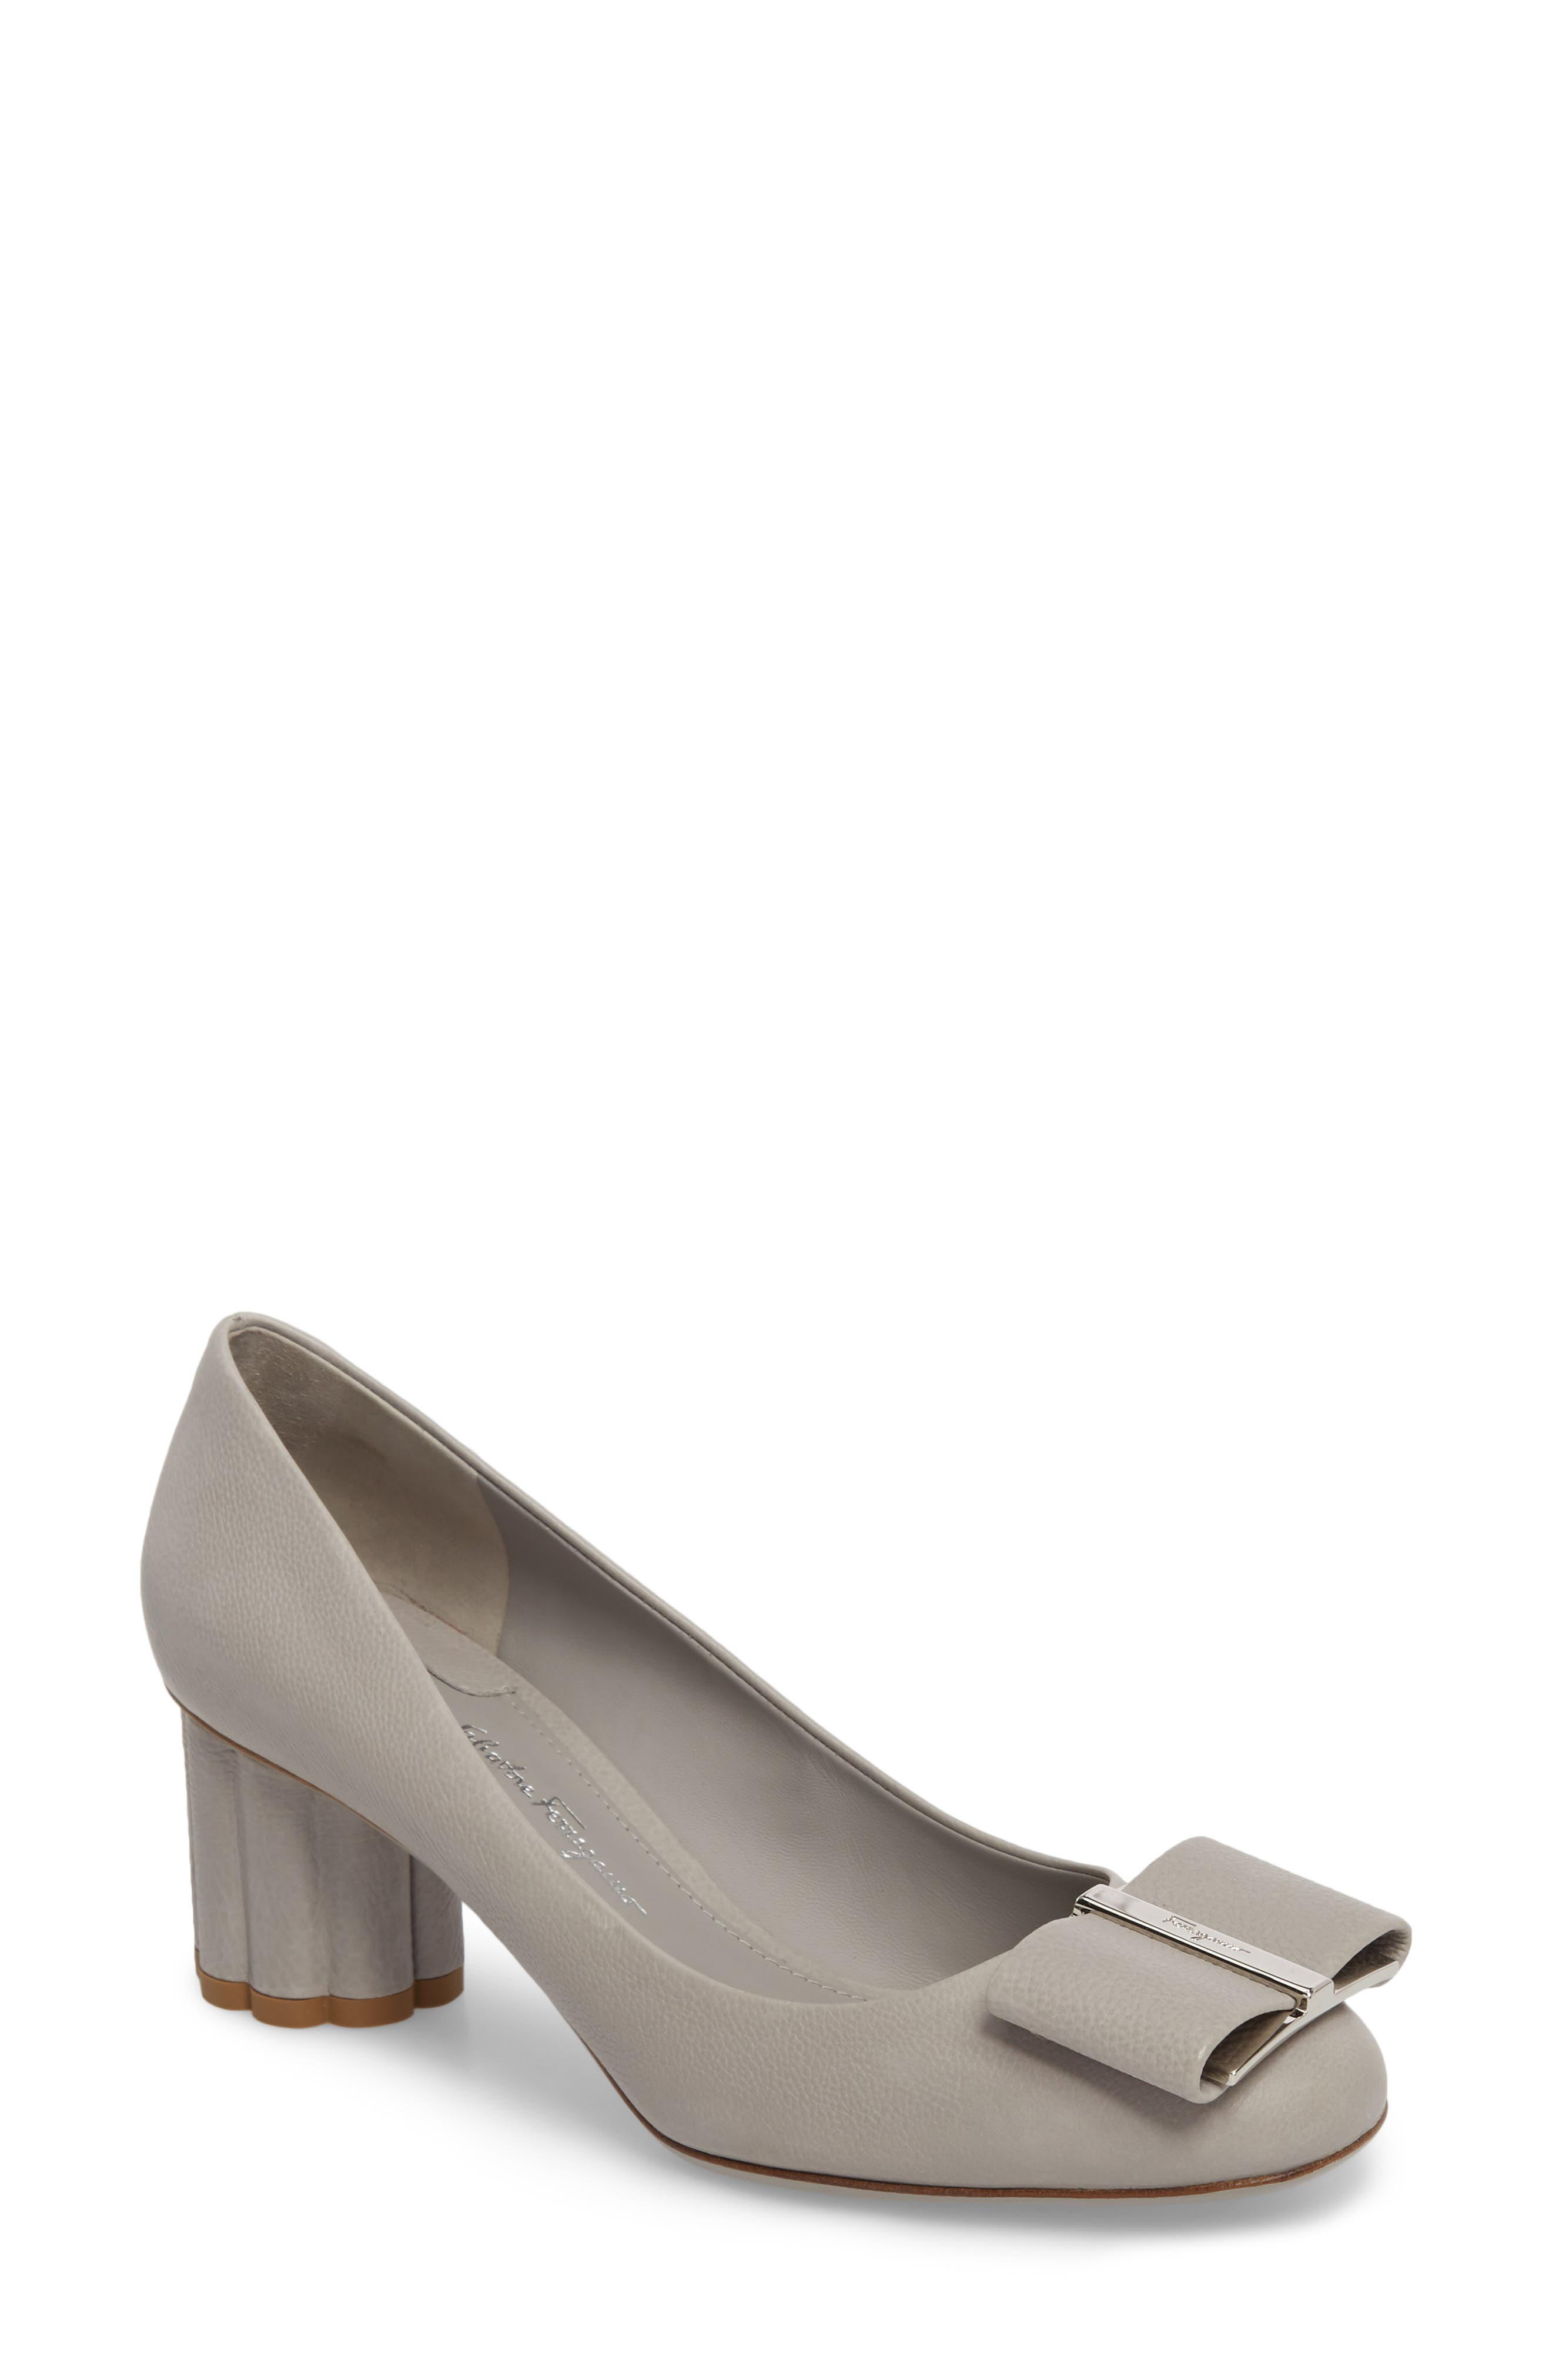 Salvatore Ferragamo Satin Sequined Pumps clearance footlocker buy cheap buy countdown package for sale discount 2014 for sale cheap price VoWGC9tR7E